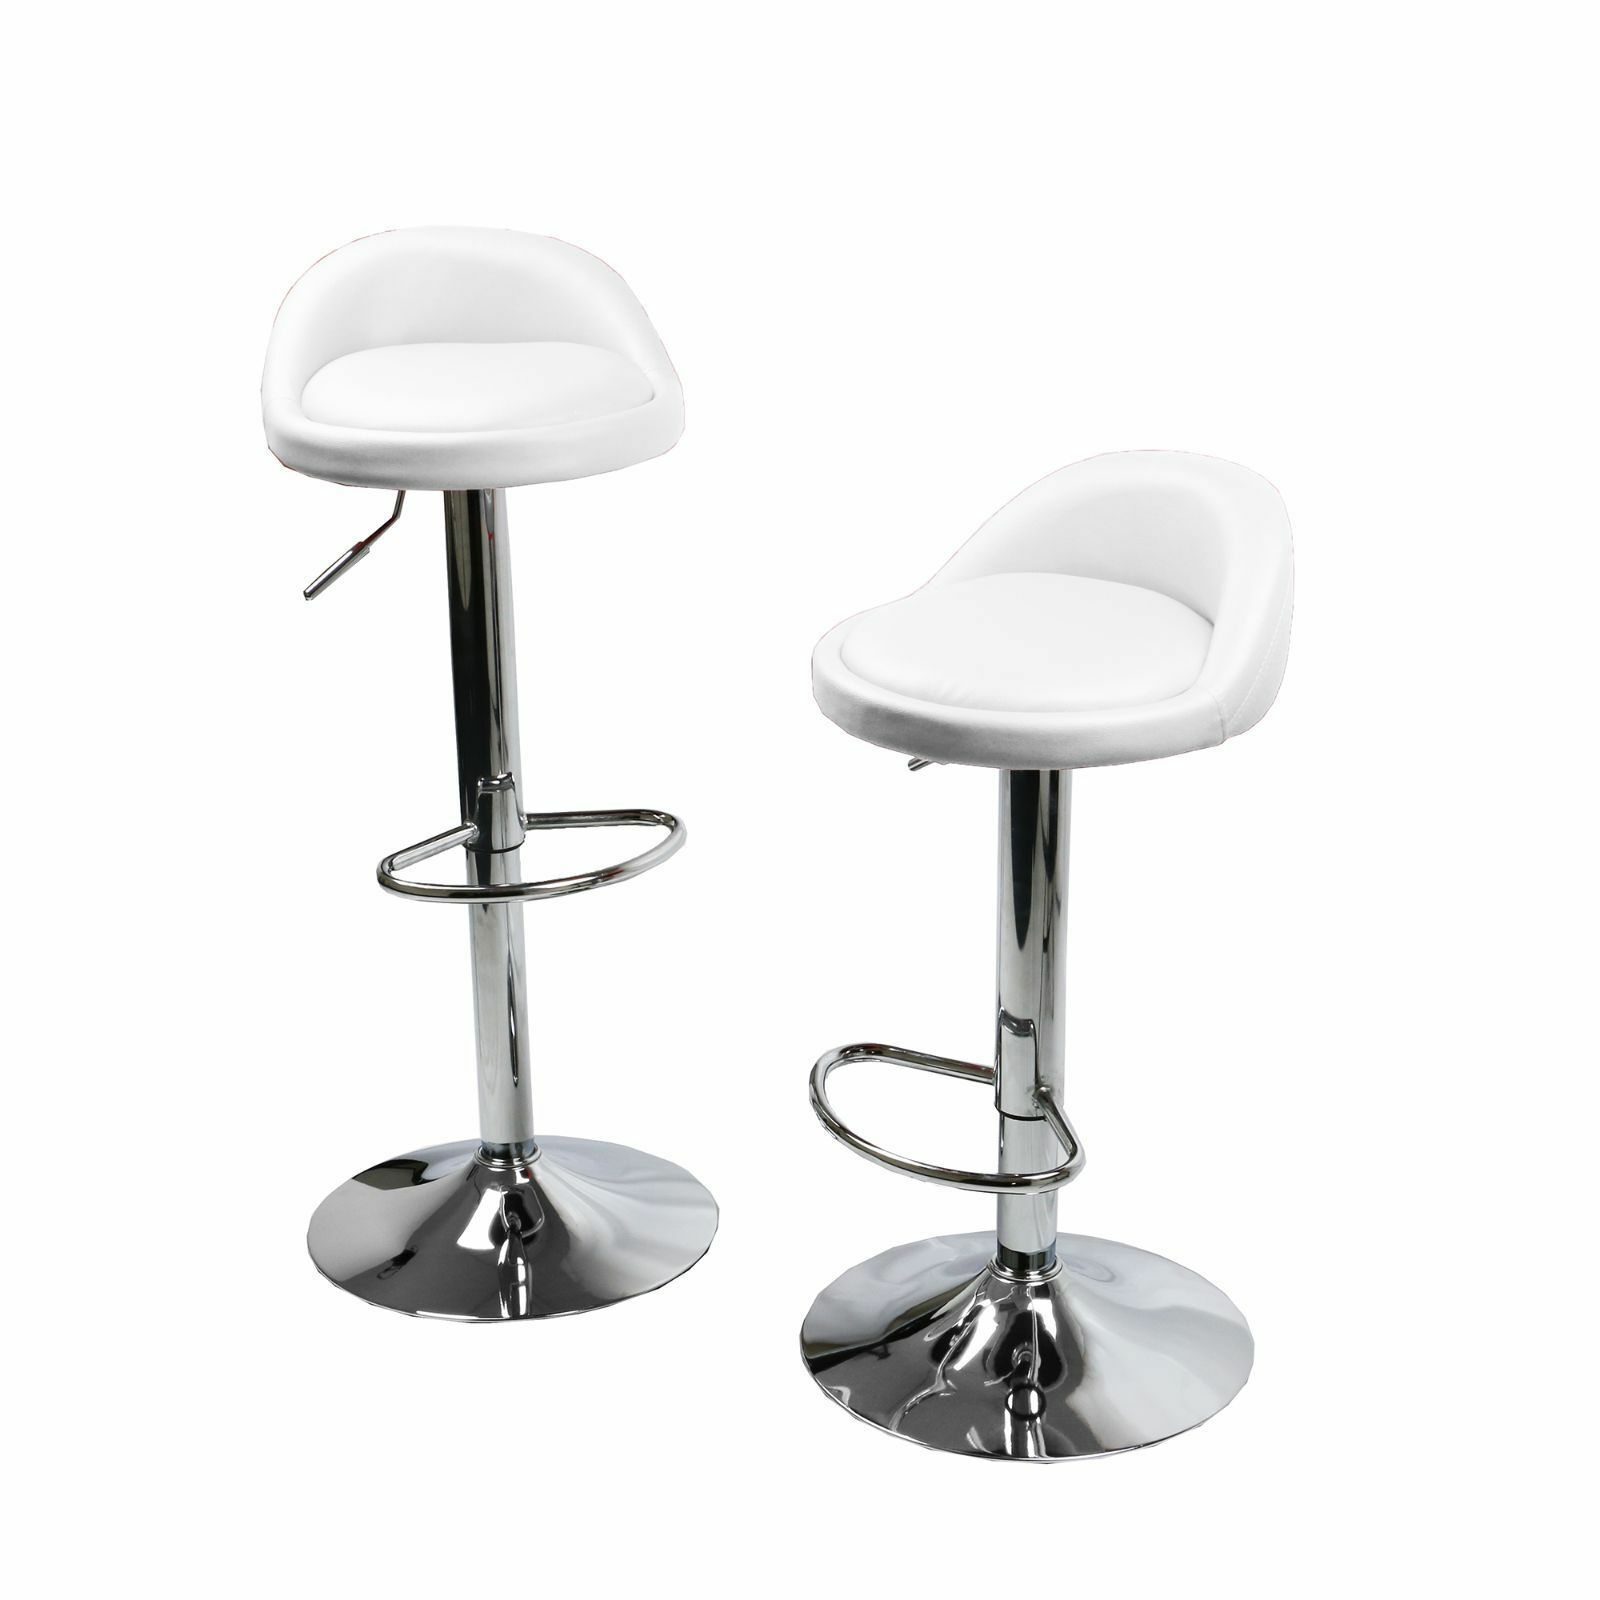 Swivel Counter Stool Bar Stool High Chair Black Kitchen: Set Of 2 White Leather Bar Stools Swivel Dinning Counter